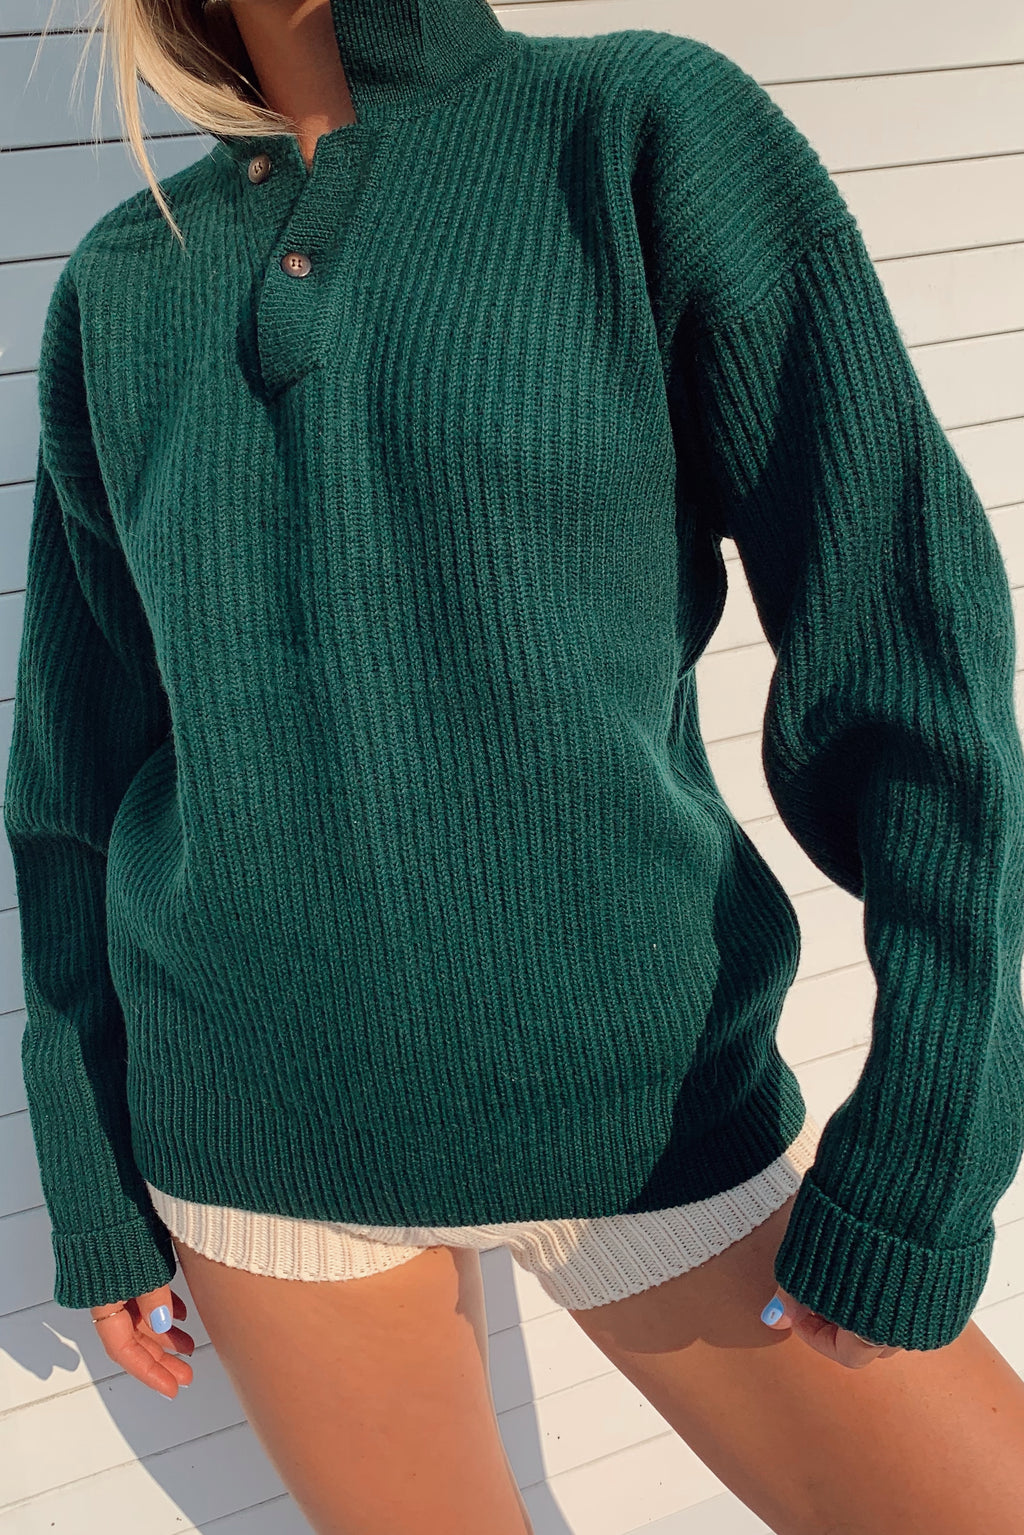 Wool Henley Sweater (S-M)